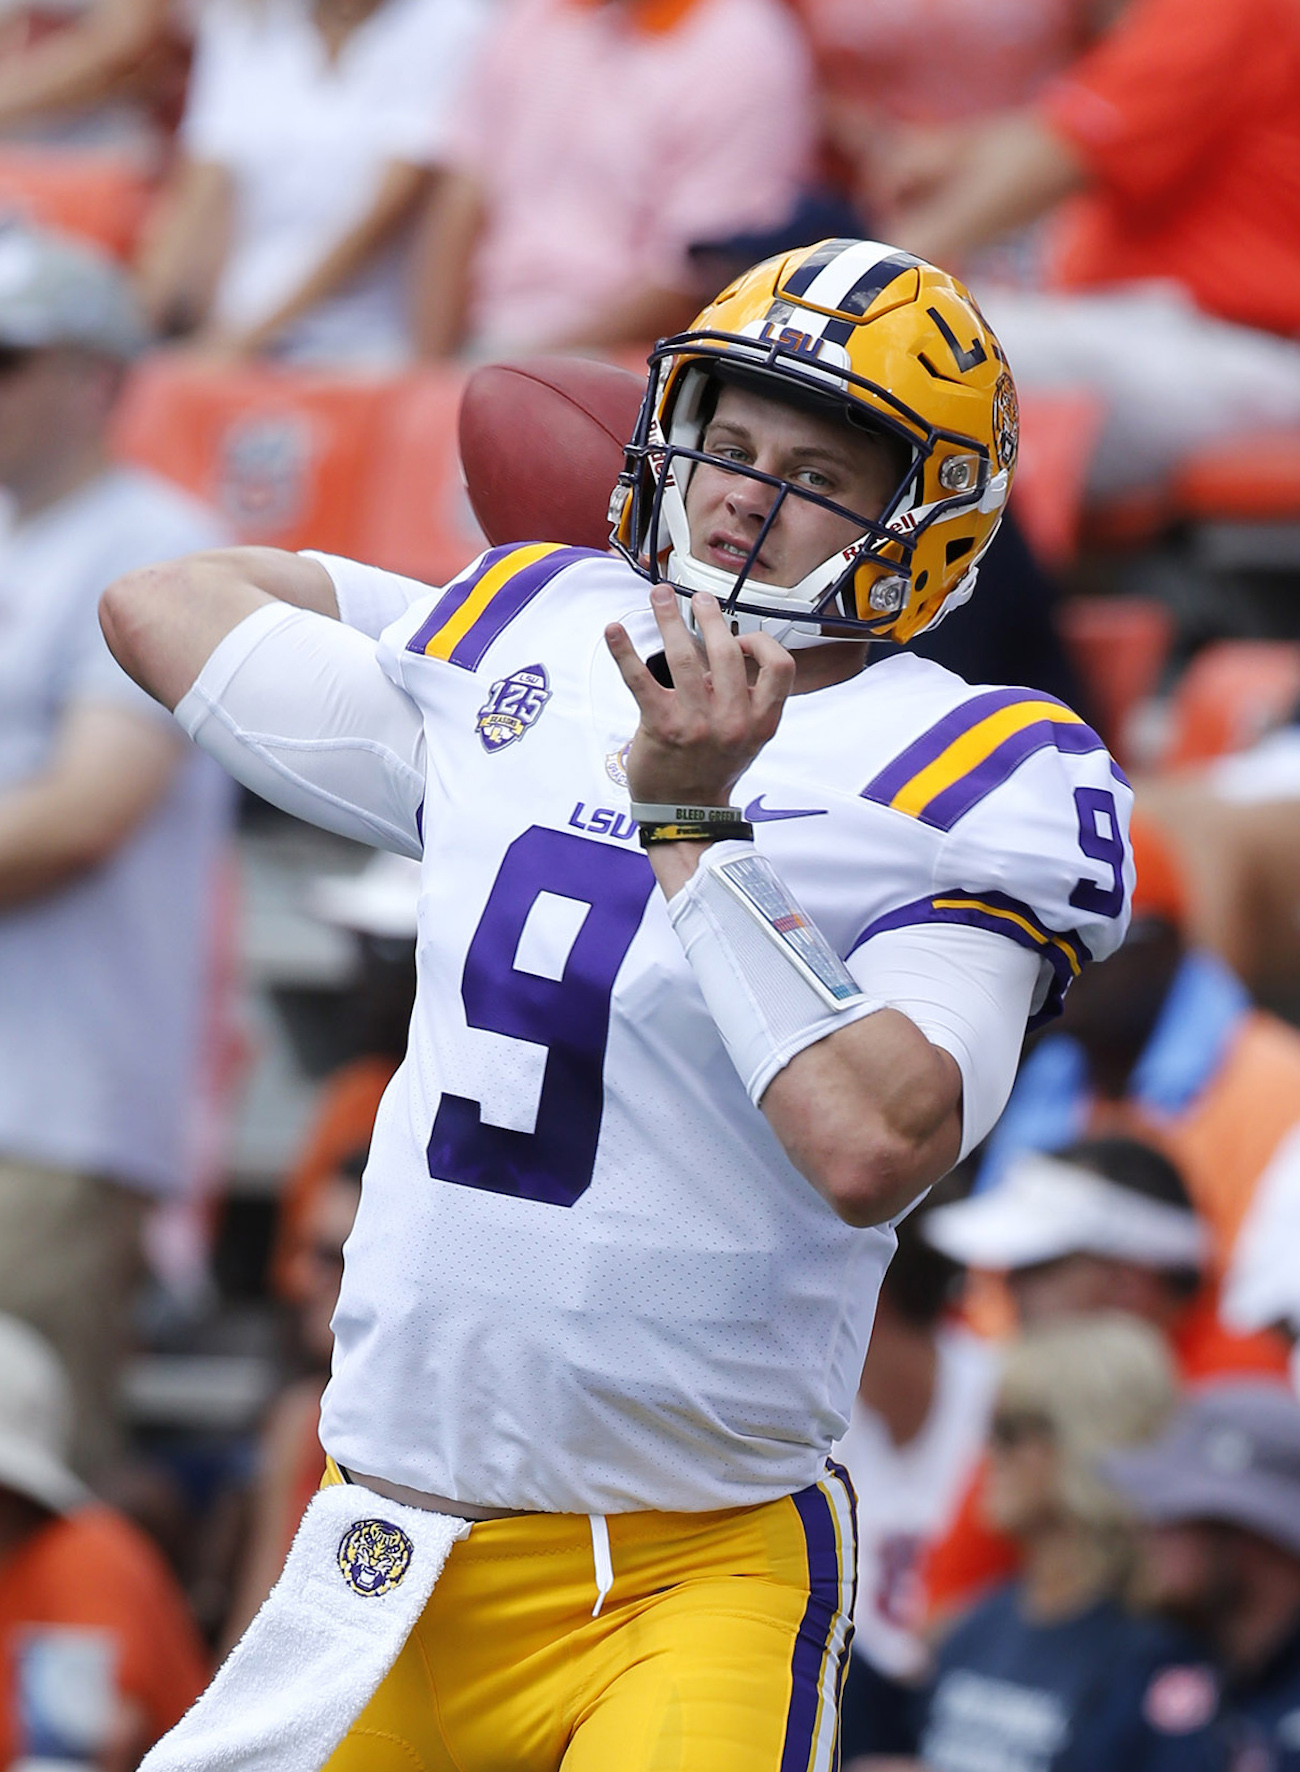 LOOK: Ohio State students recognize LSU QB Joe Burrow with ...